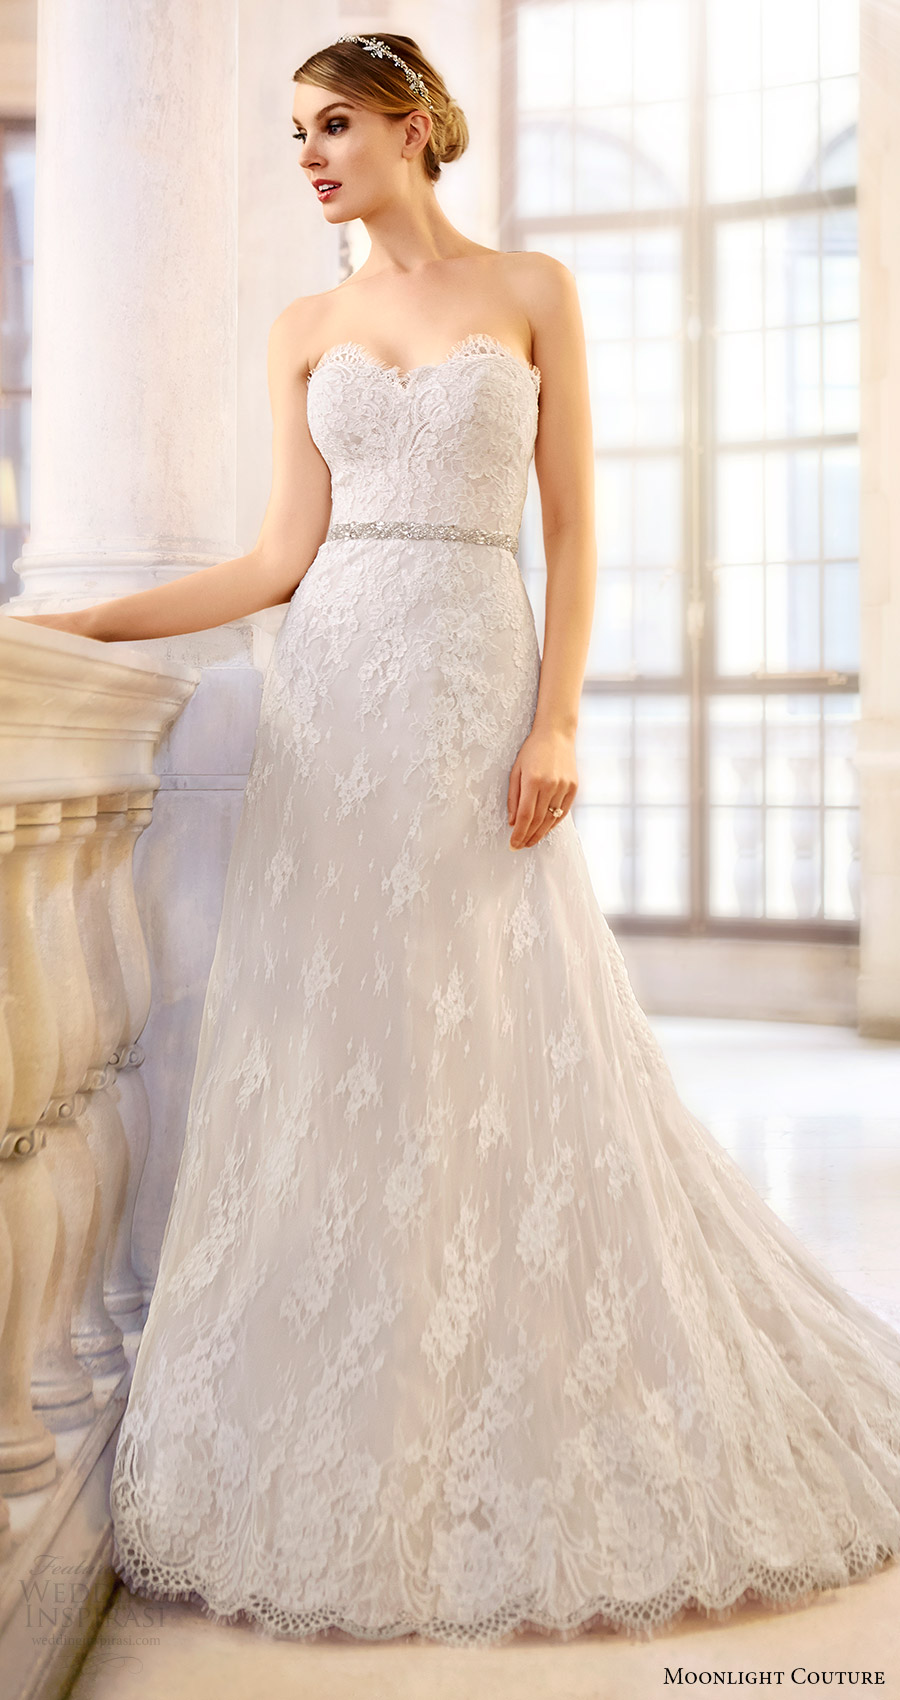 moonlight couture bridal fall 2016 strapless sweetheart aline lace wedding dress (h1313) mv